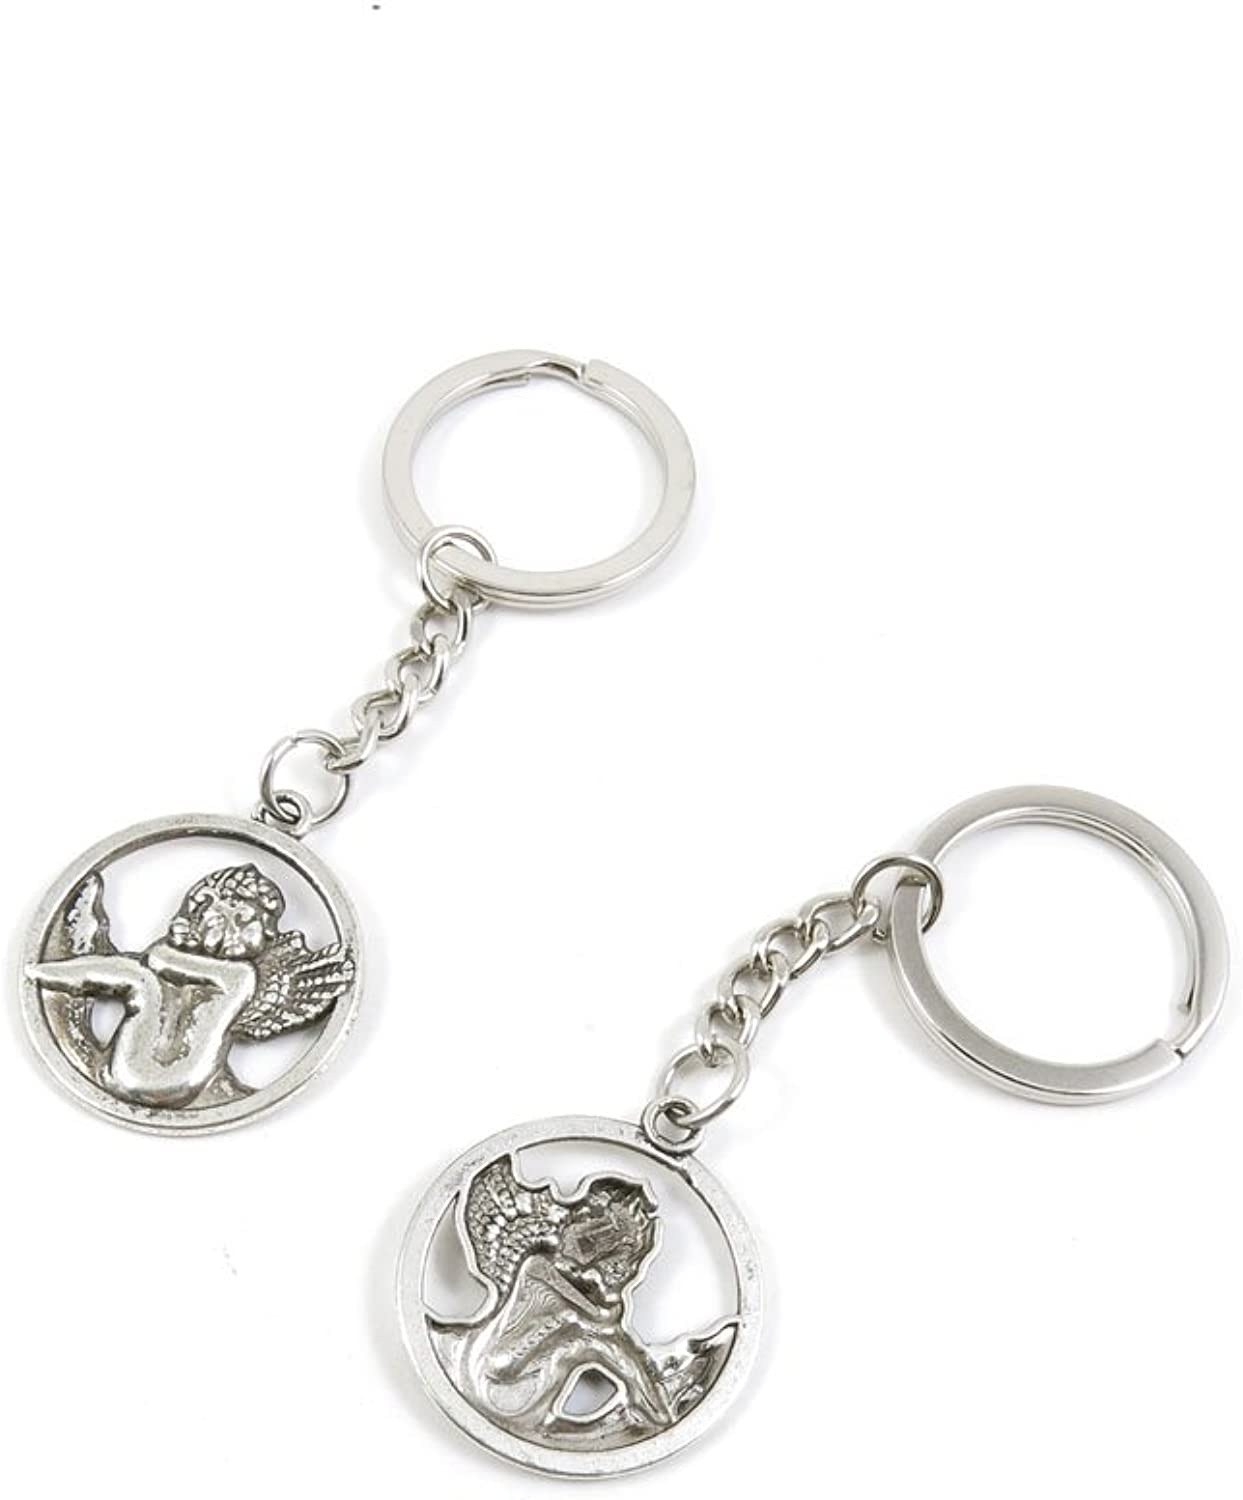 100 Pieces Keychain Keyring Door Car Key Chain Ring Tag Charms Bulk Supply Jewelry Making Clasp Findings H9HV5Z Angel Cupid